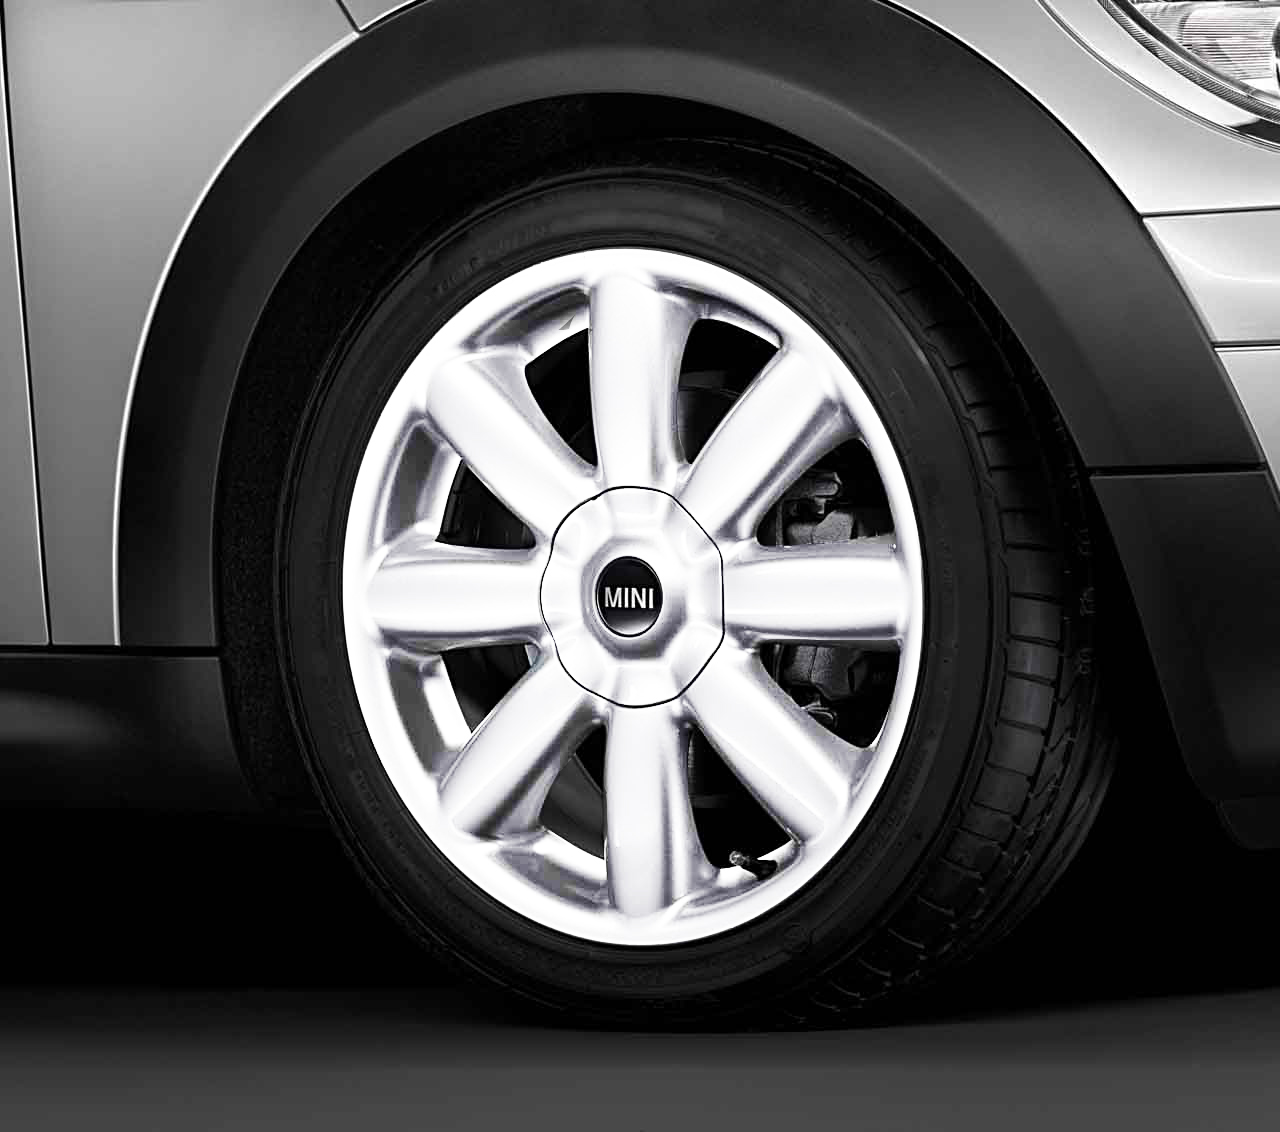 Mini Genuine 17 Inch Light Alloy Wheel Crown Spoke R104 White